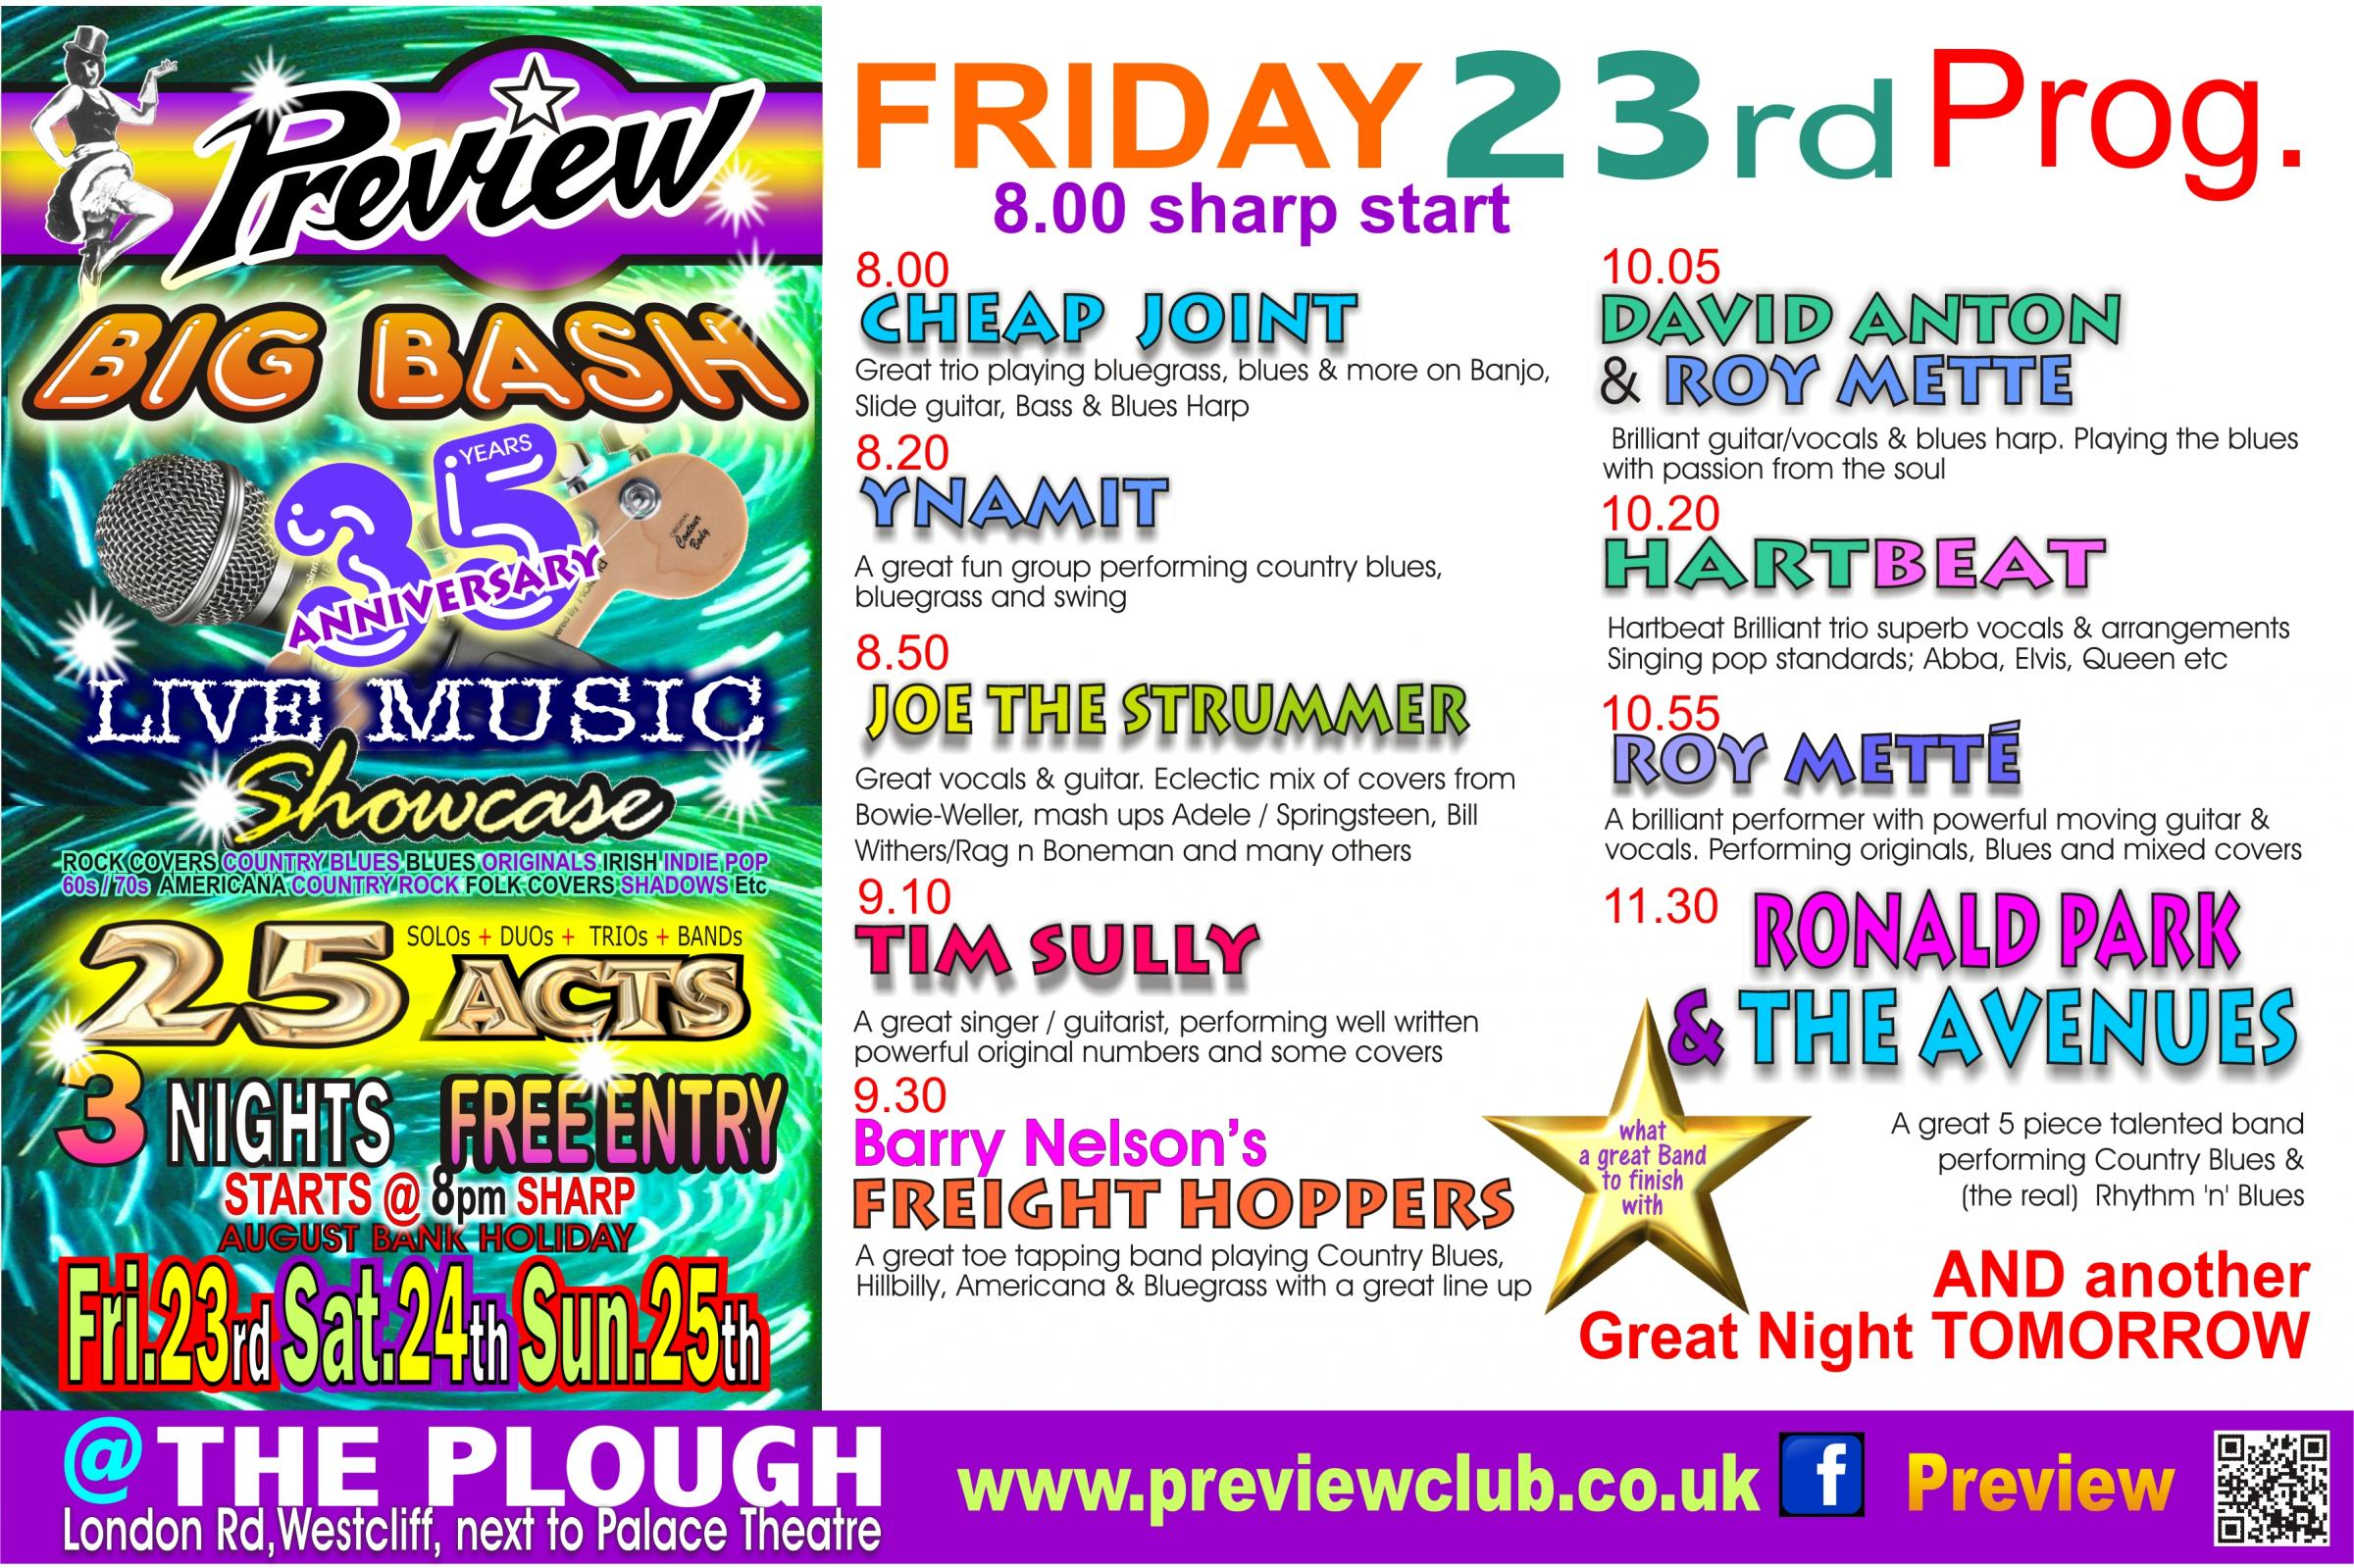 PREVIEW's Live Music BIG BASH Friday 23rd